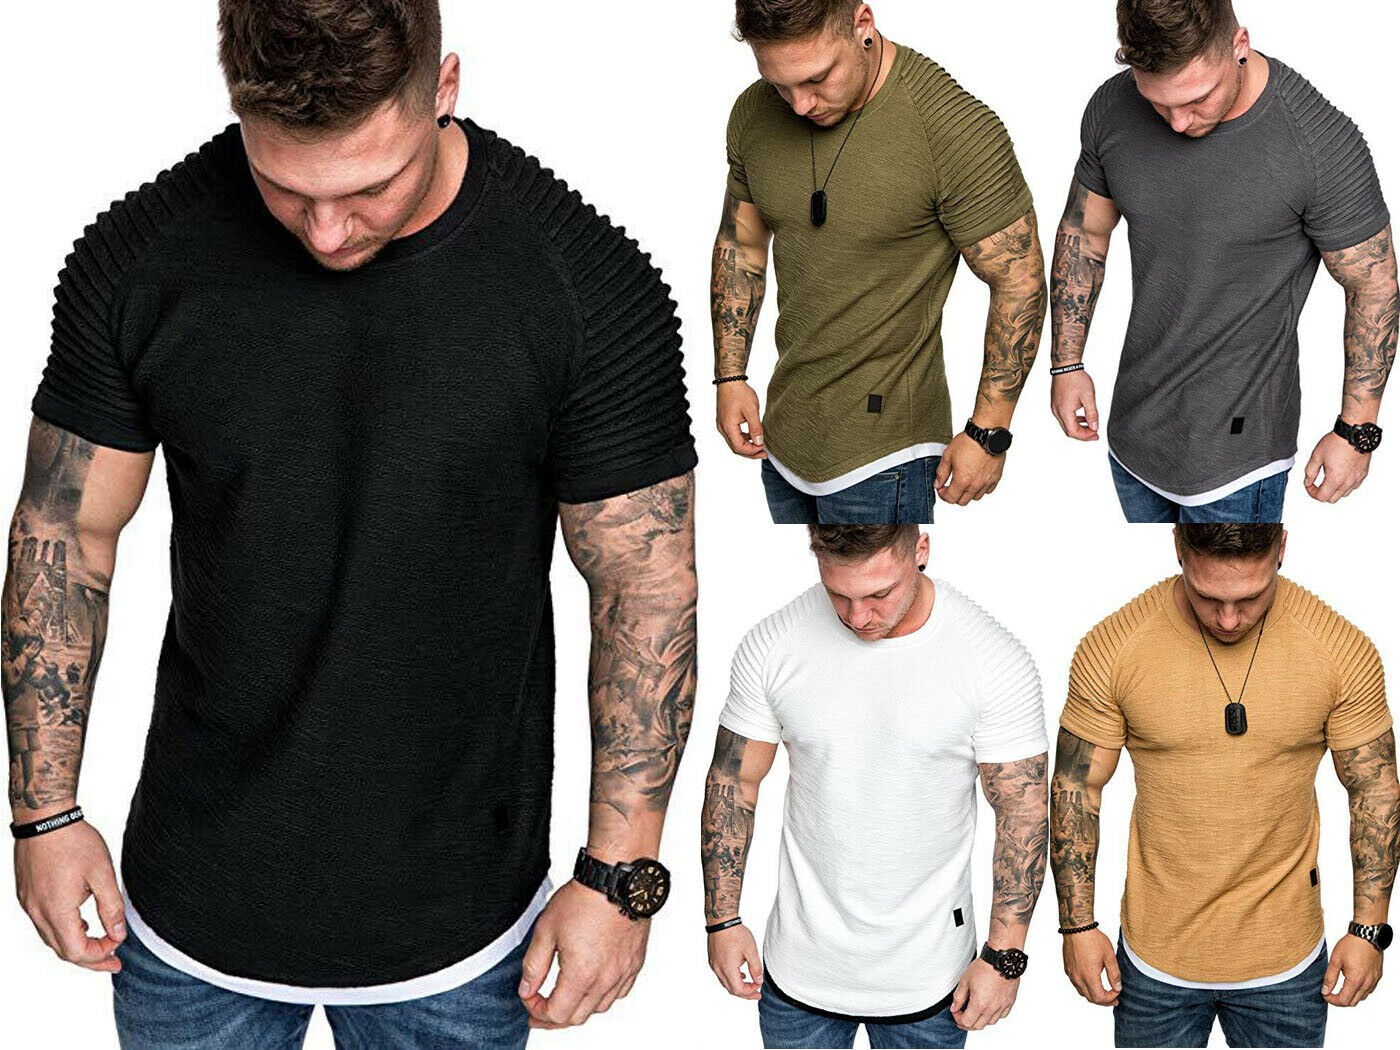 Men Slim Fit O-Neck Wrinkled Tee Casual Short Sleeve T-shirt Wrinkled Tops Summer Clothing Muscle Plain Tee 5 Colors Tooling